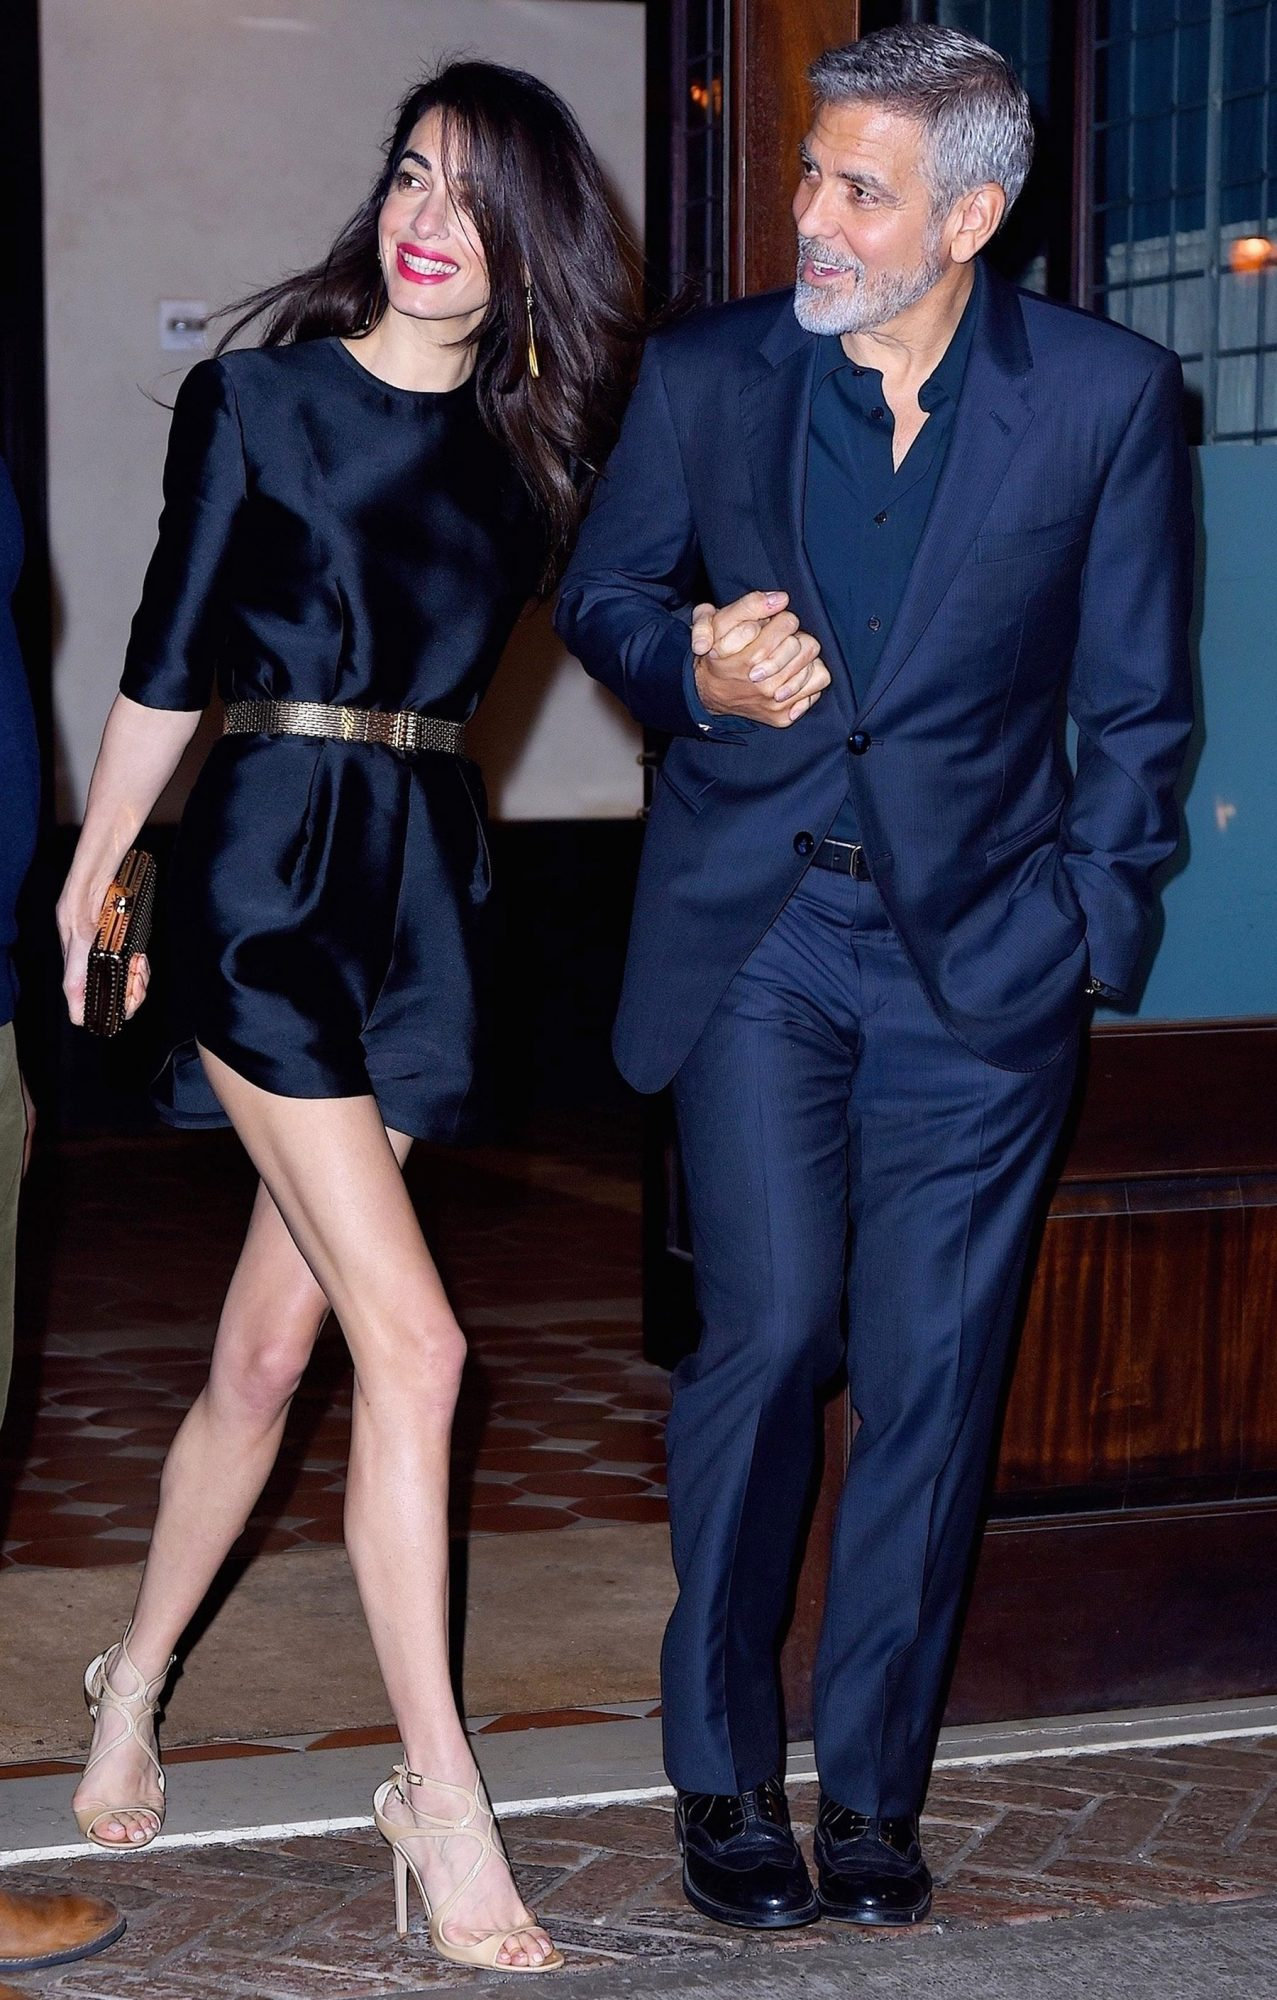 *EXCLUSIVE* George and Amal Clooney are all smiles as they step out to celebrate George's Birthday in Tribeca